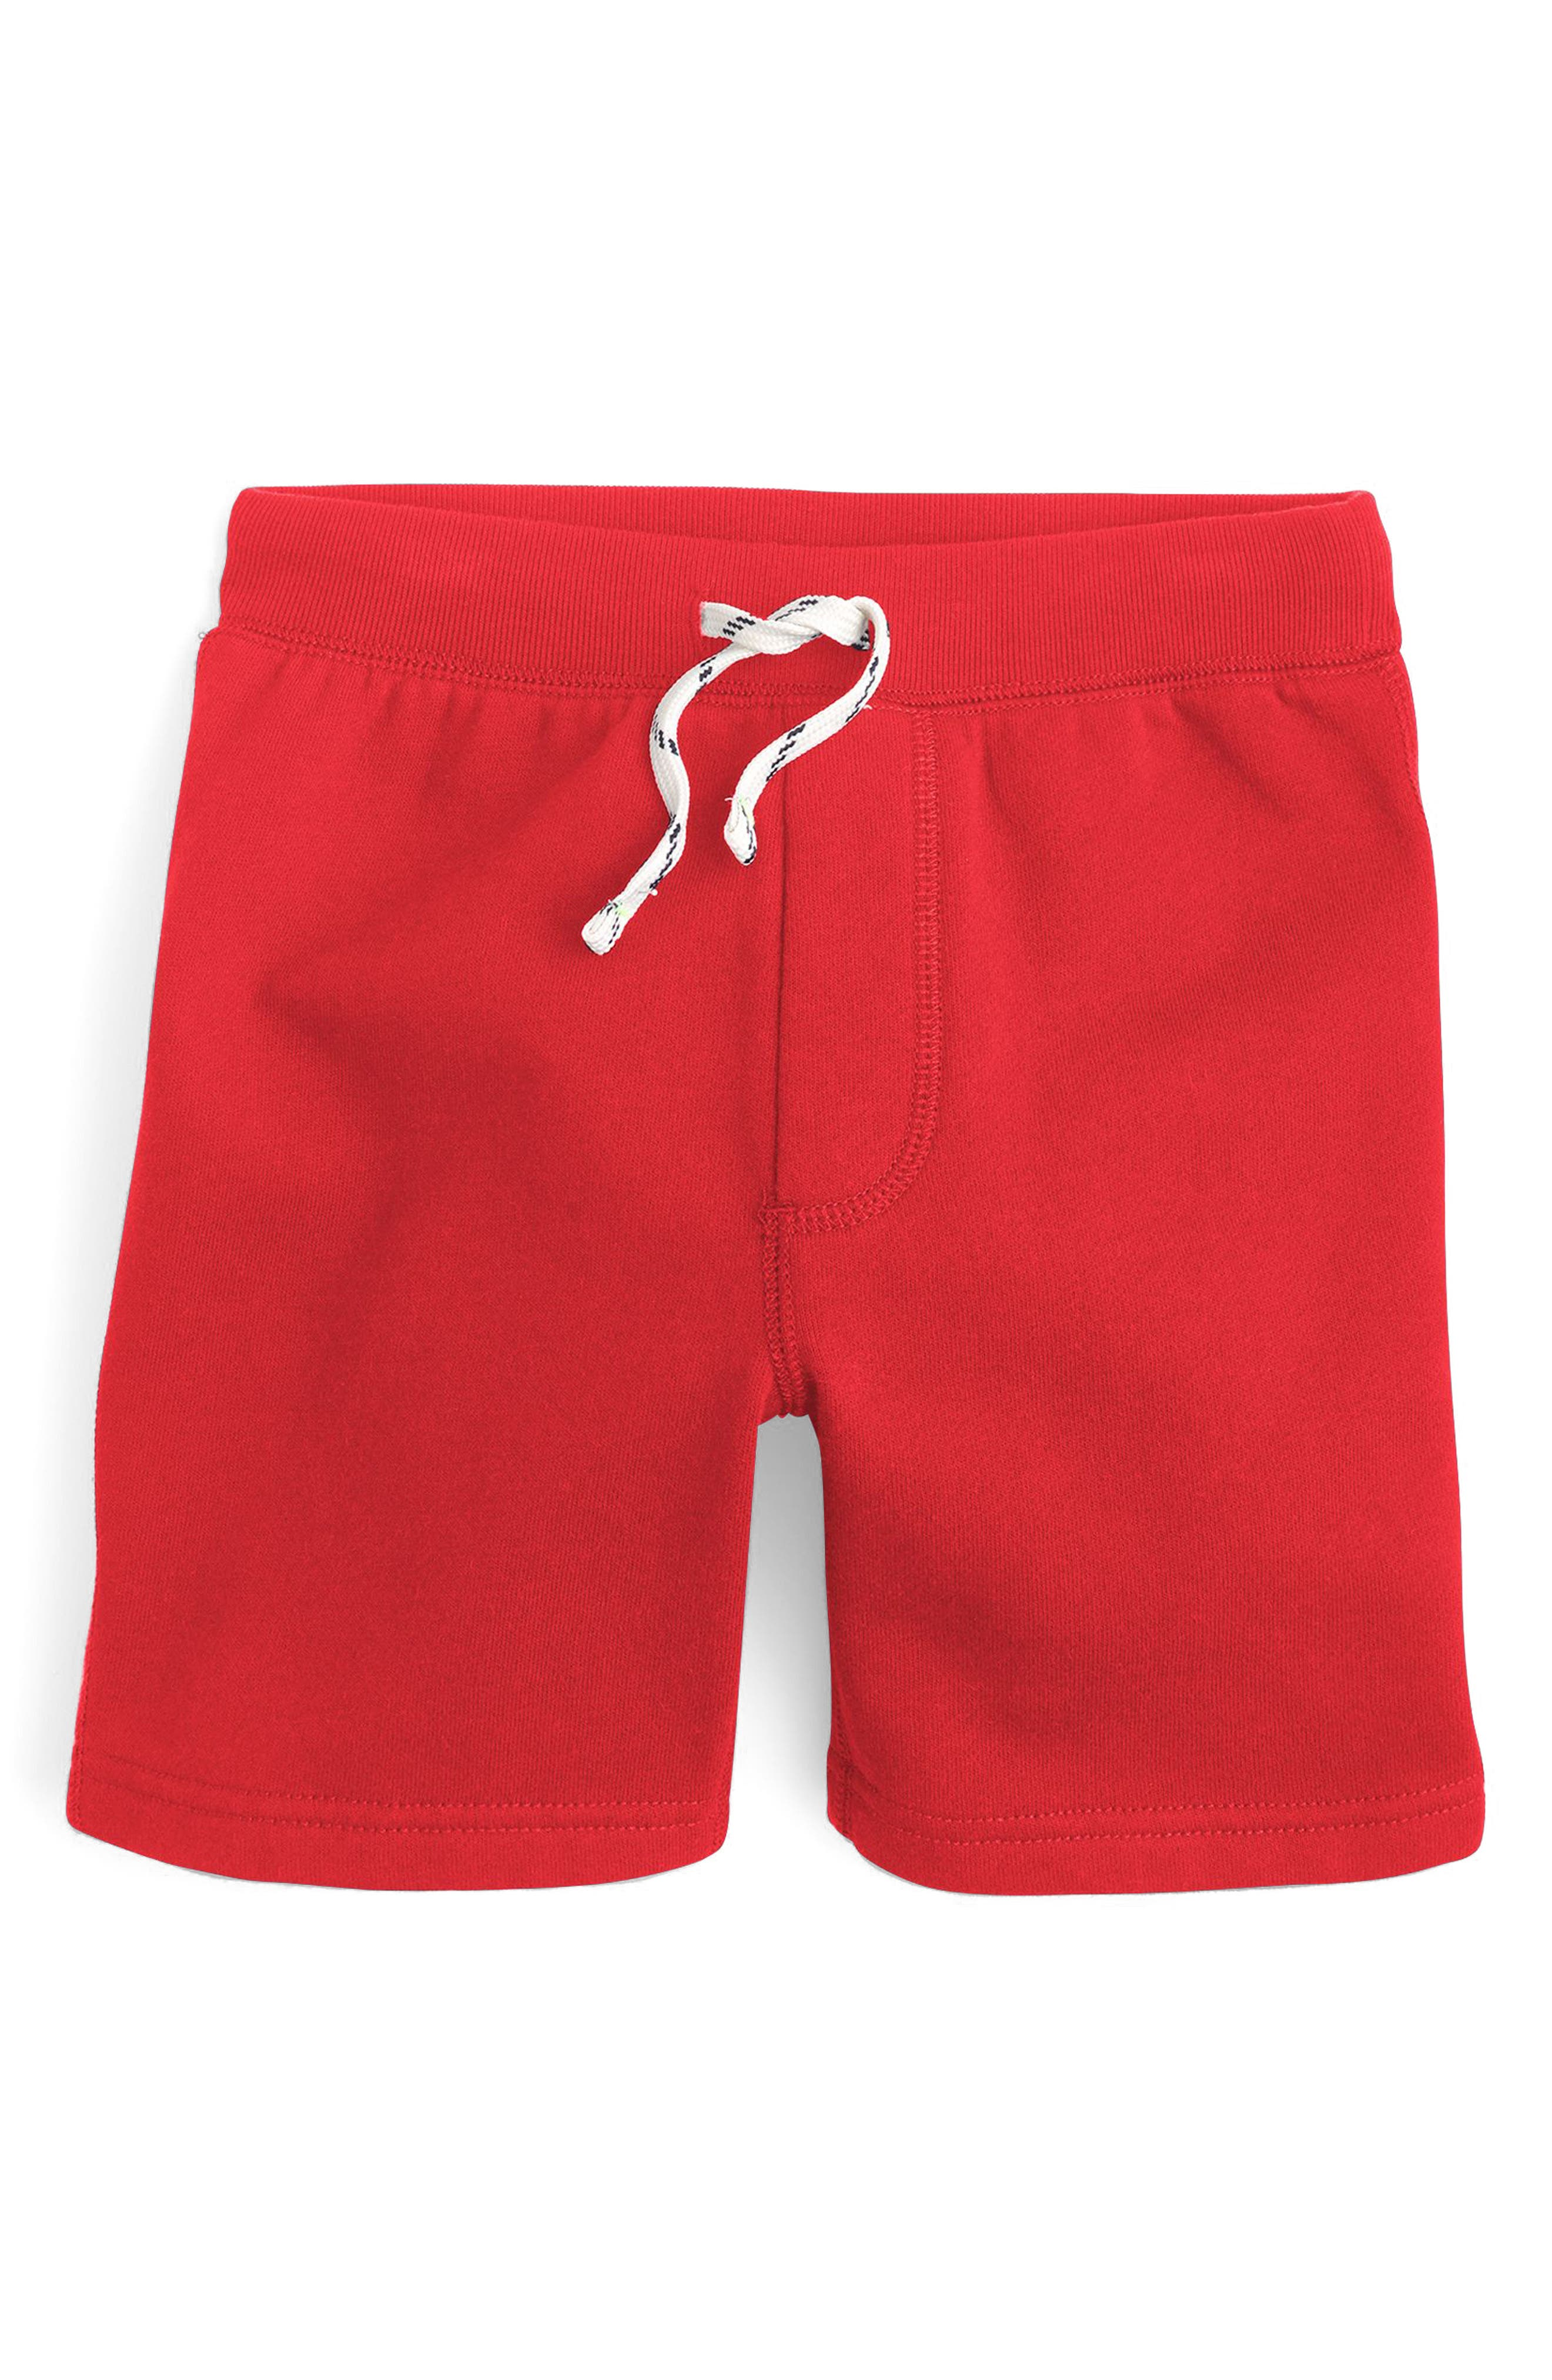 Classic Sweat Shorts,                             Main thumbnail 1, color,                             Milan Red